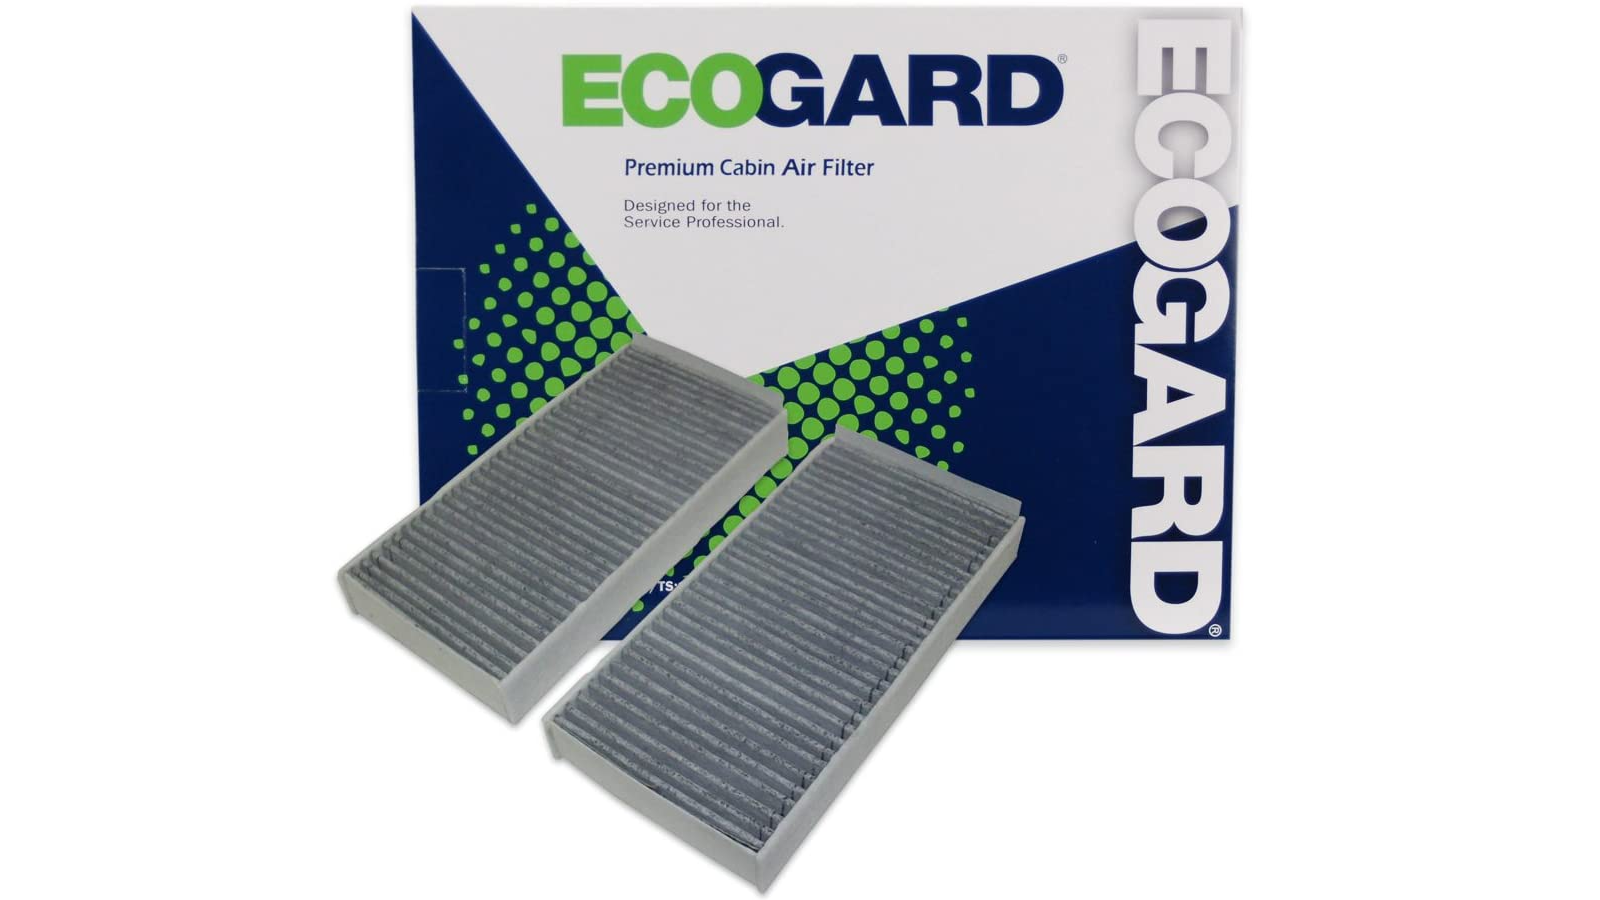 Image of product packaging and two car air filters